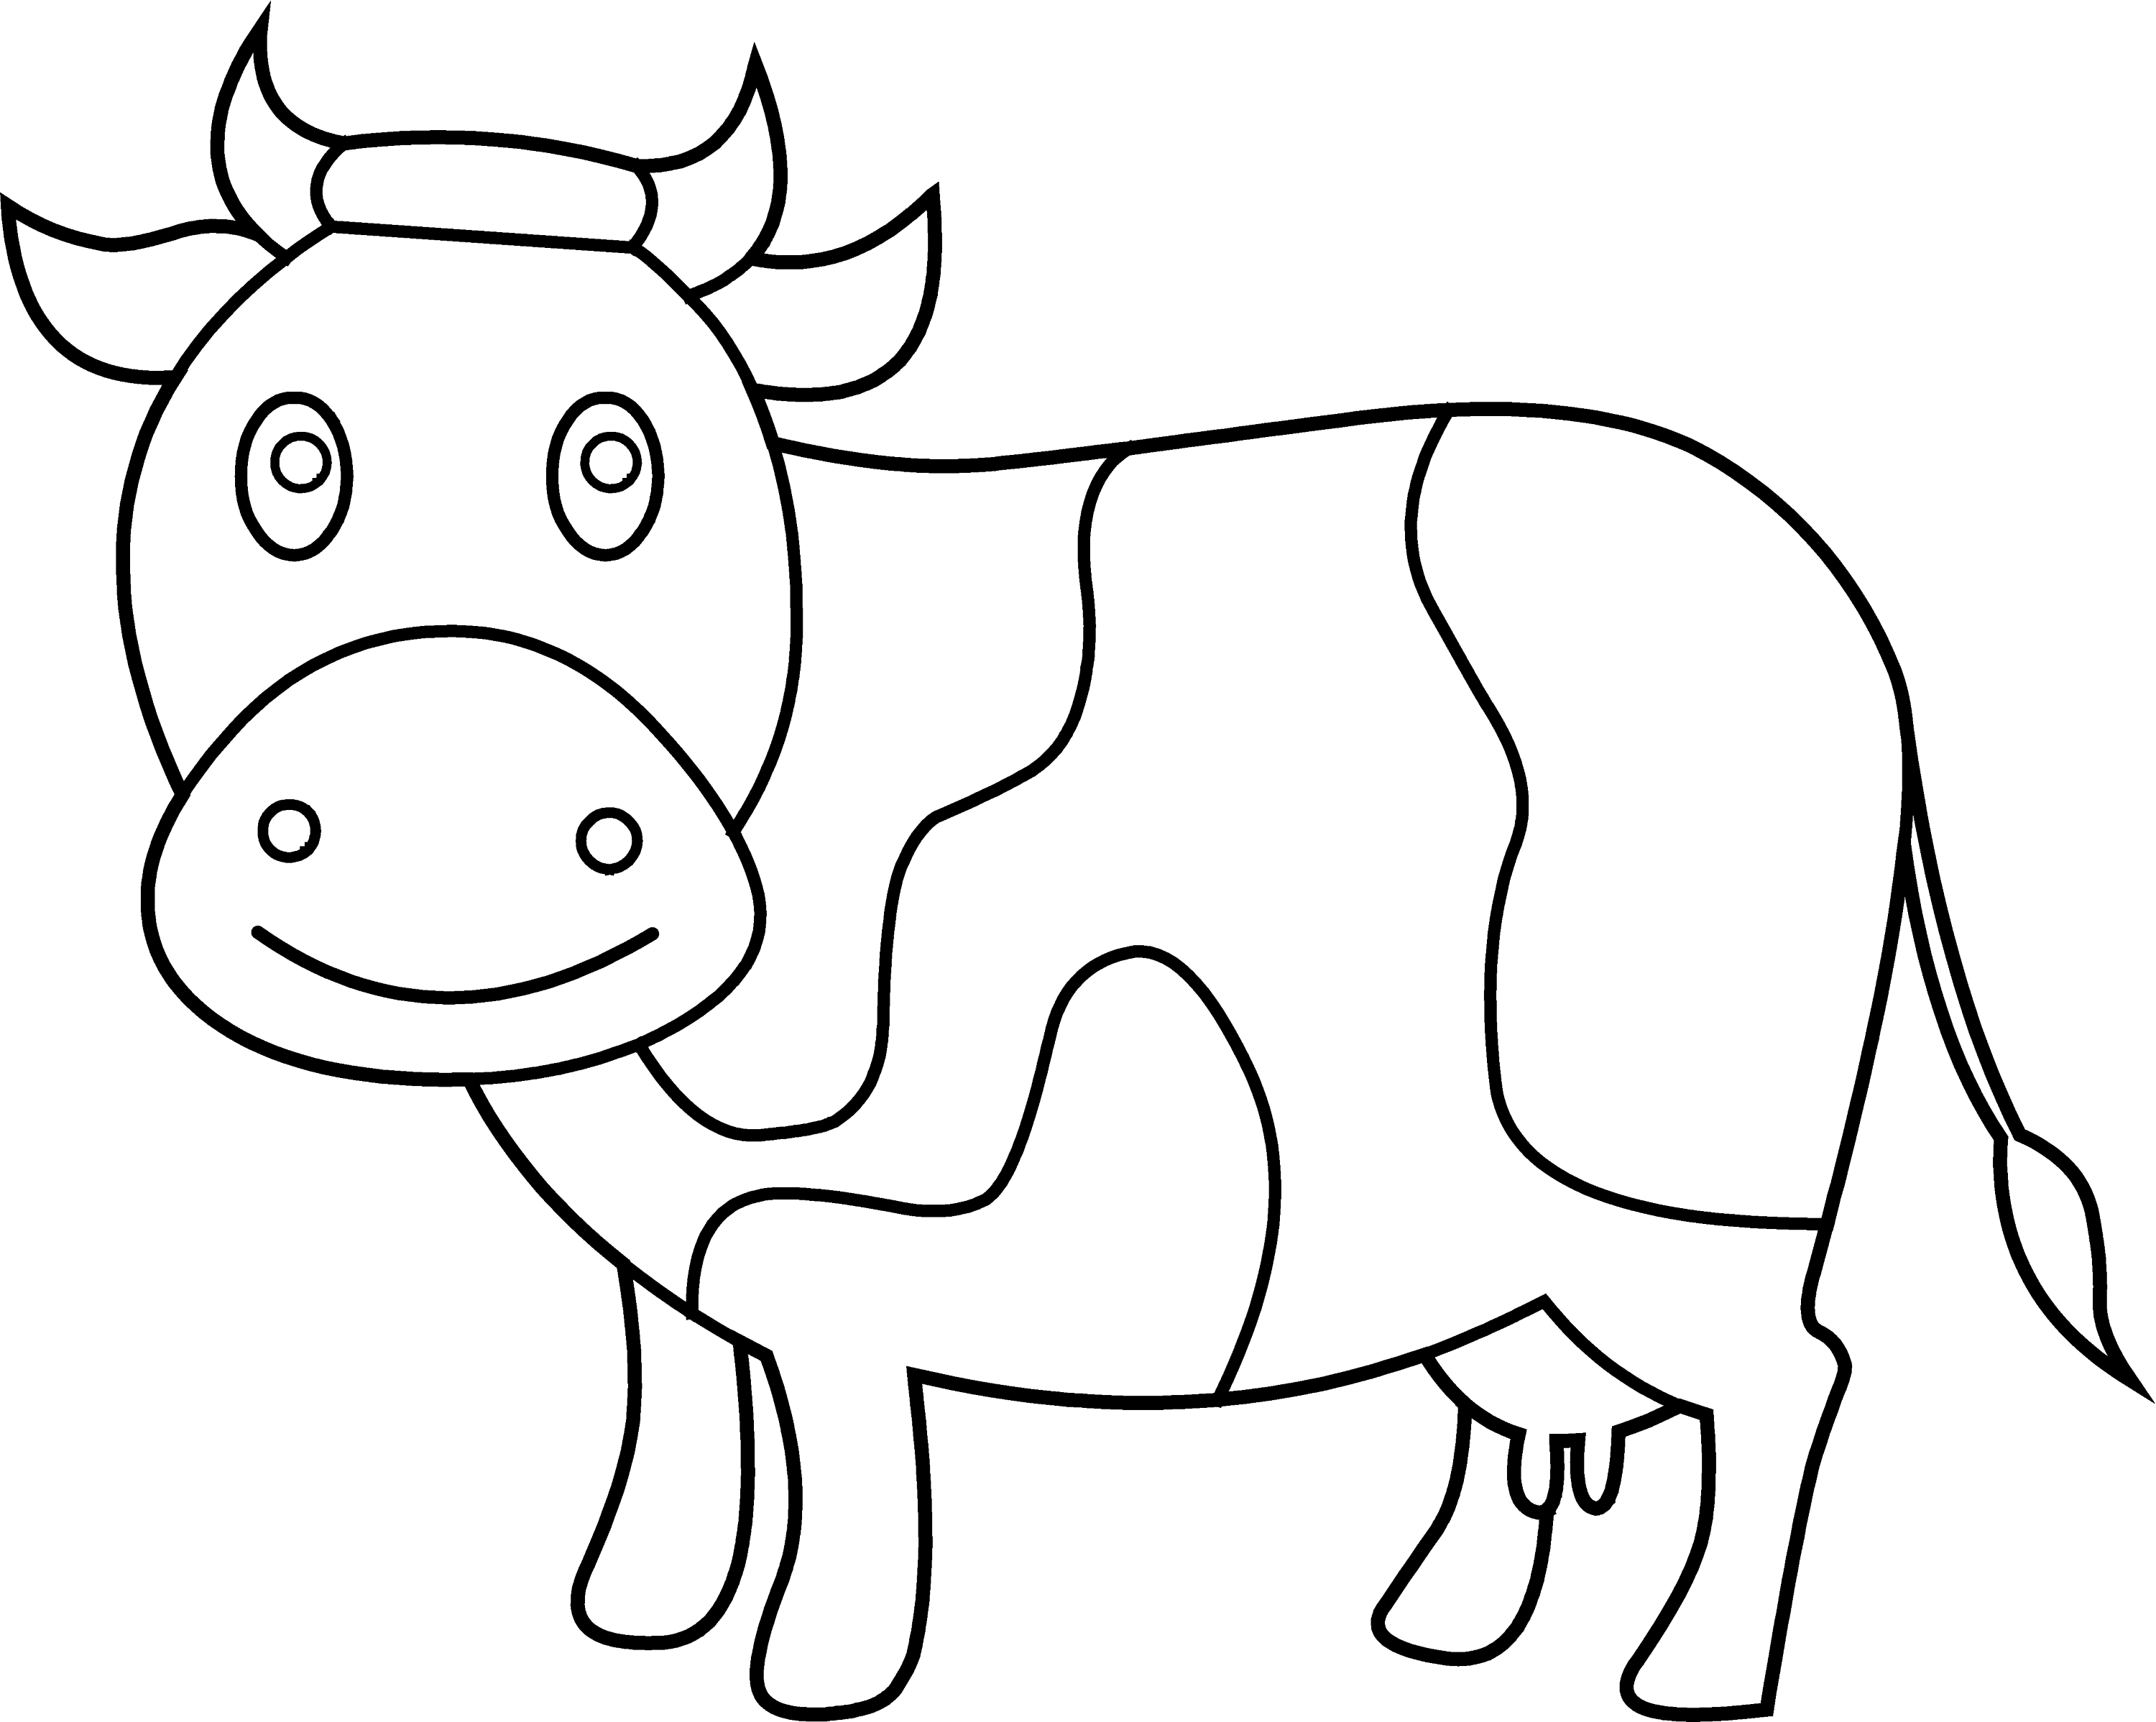 Cute Cow Coloring Page - Free Clip Art